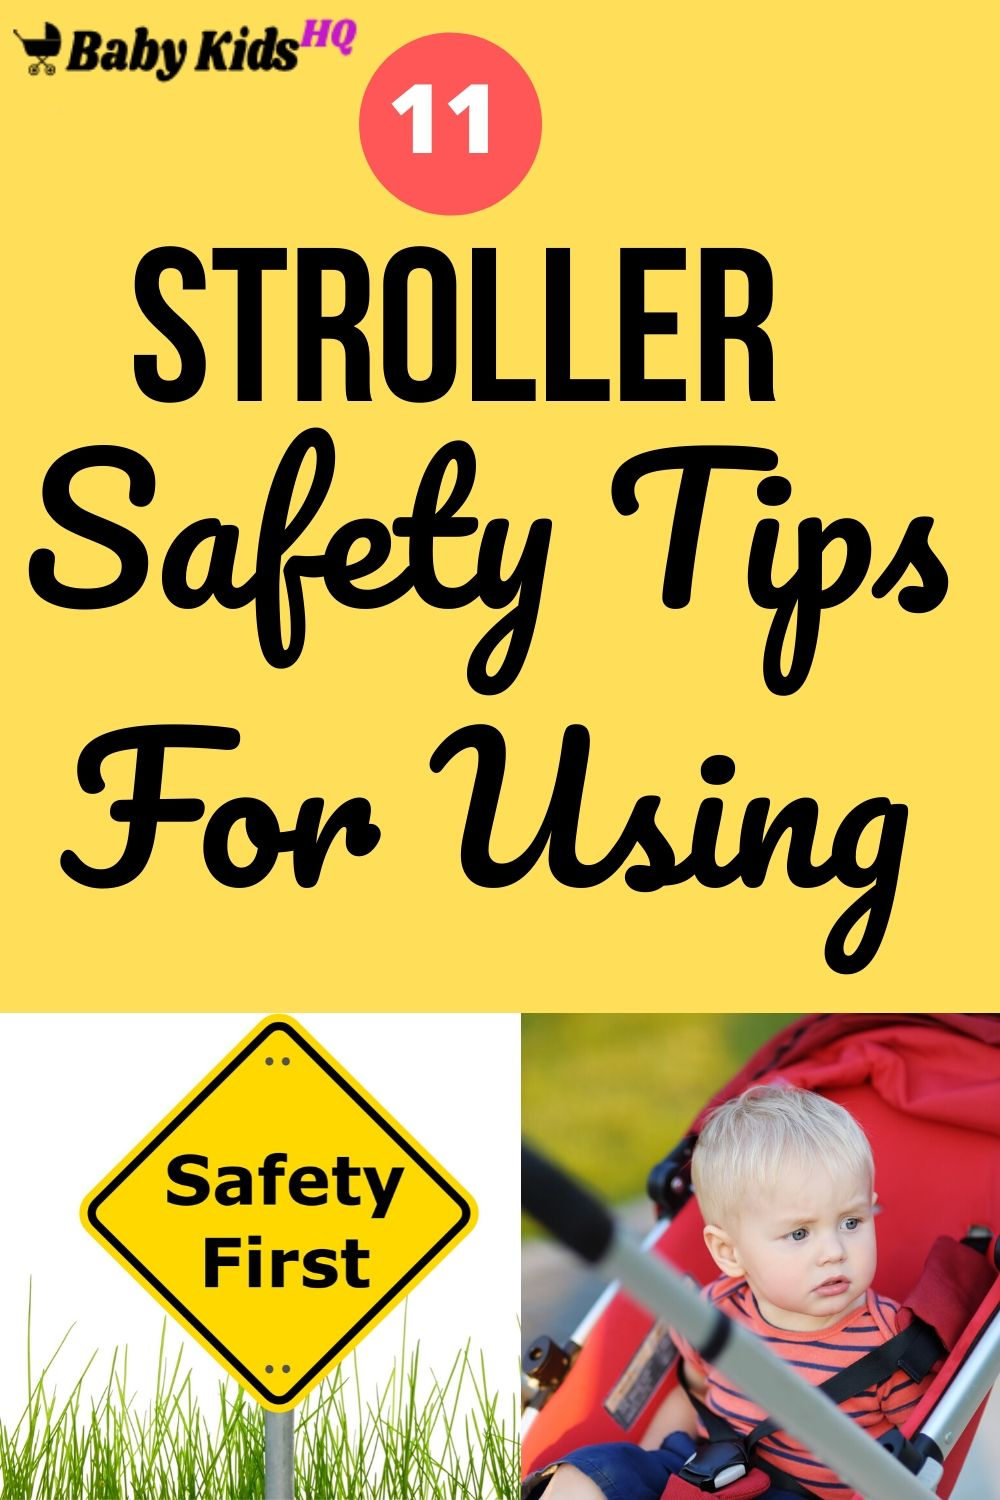 11 Safety Tips to Know When Using Strollers (2)